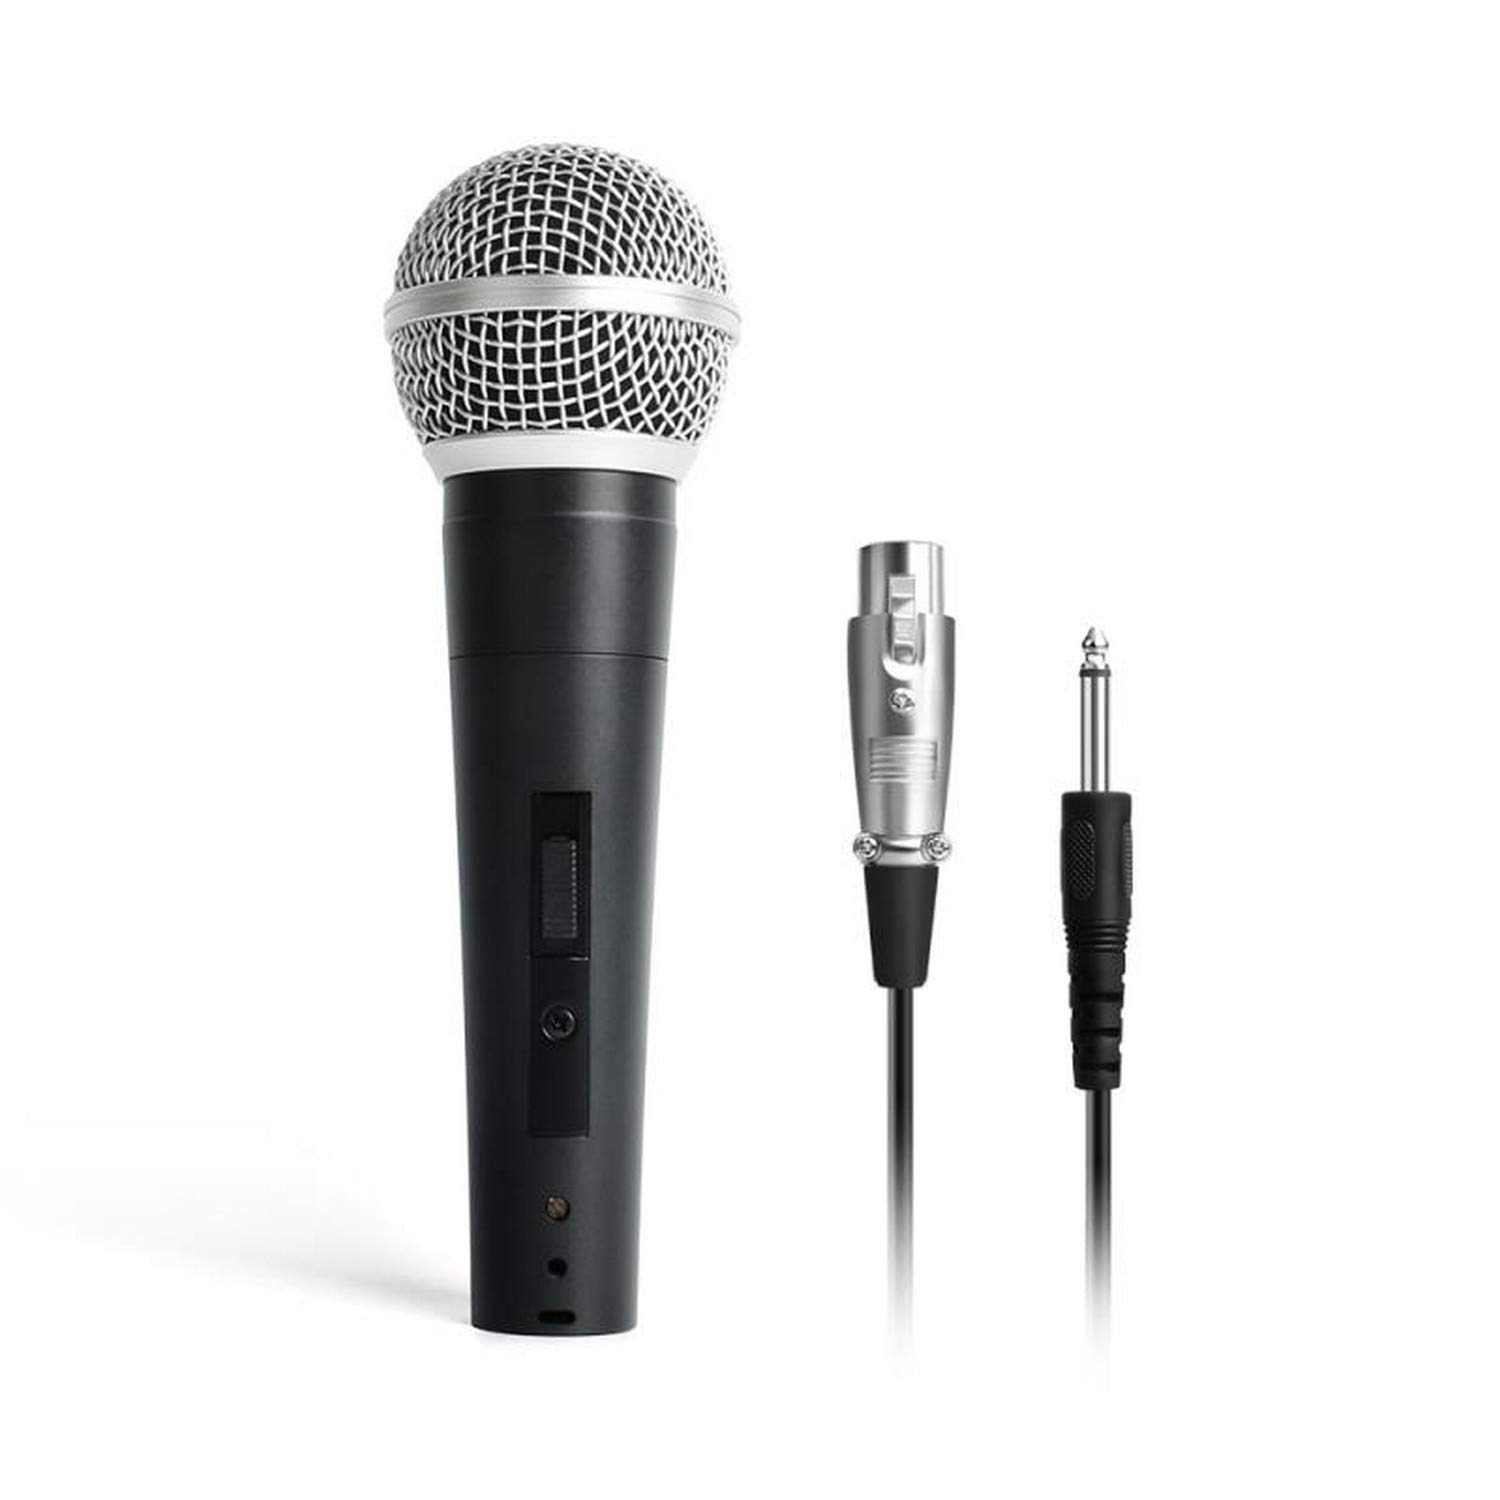 Maono AU-WDM01 Professional Dynamic Cardioid Vocal Wired Microphone with XLR Cable (Black) product image